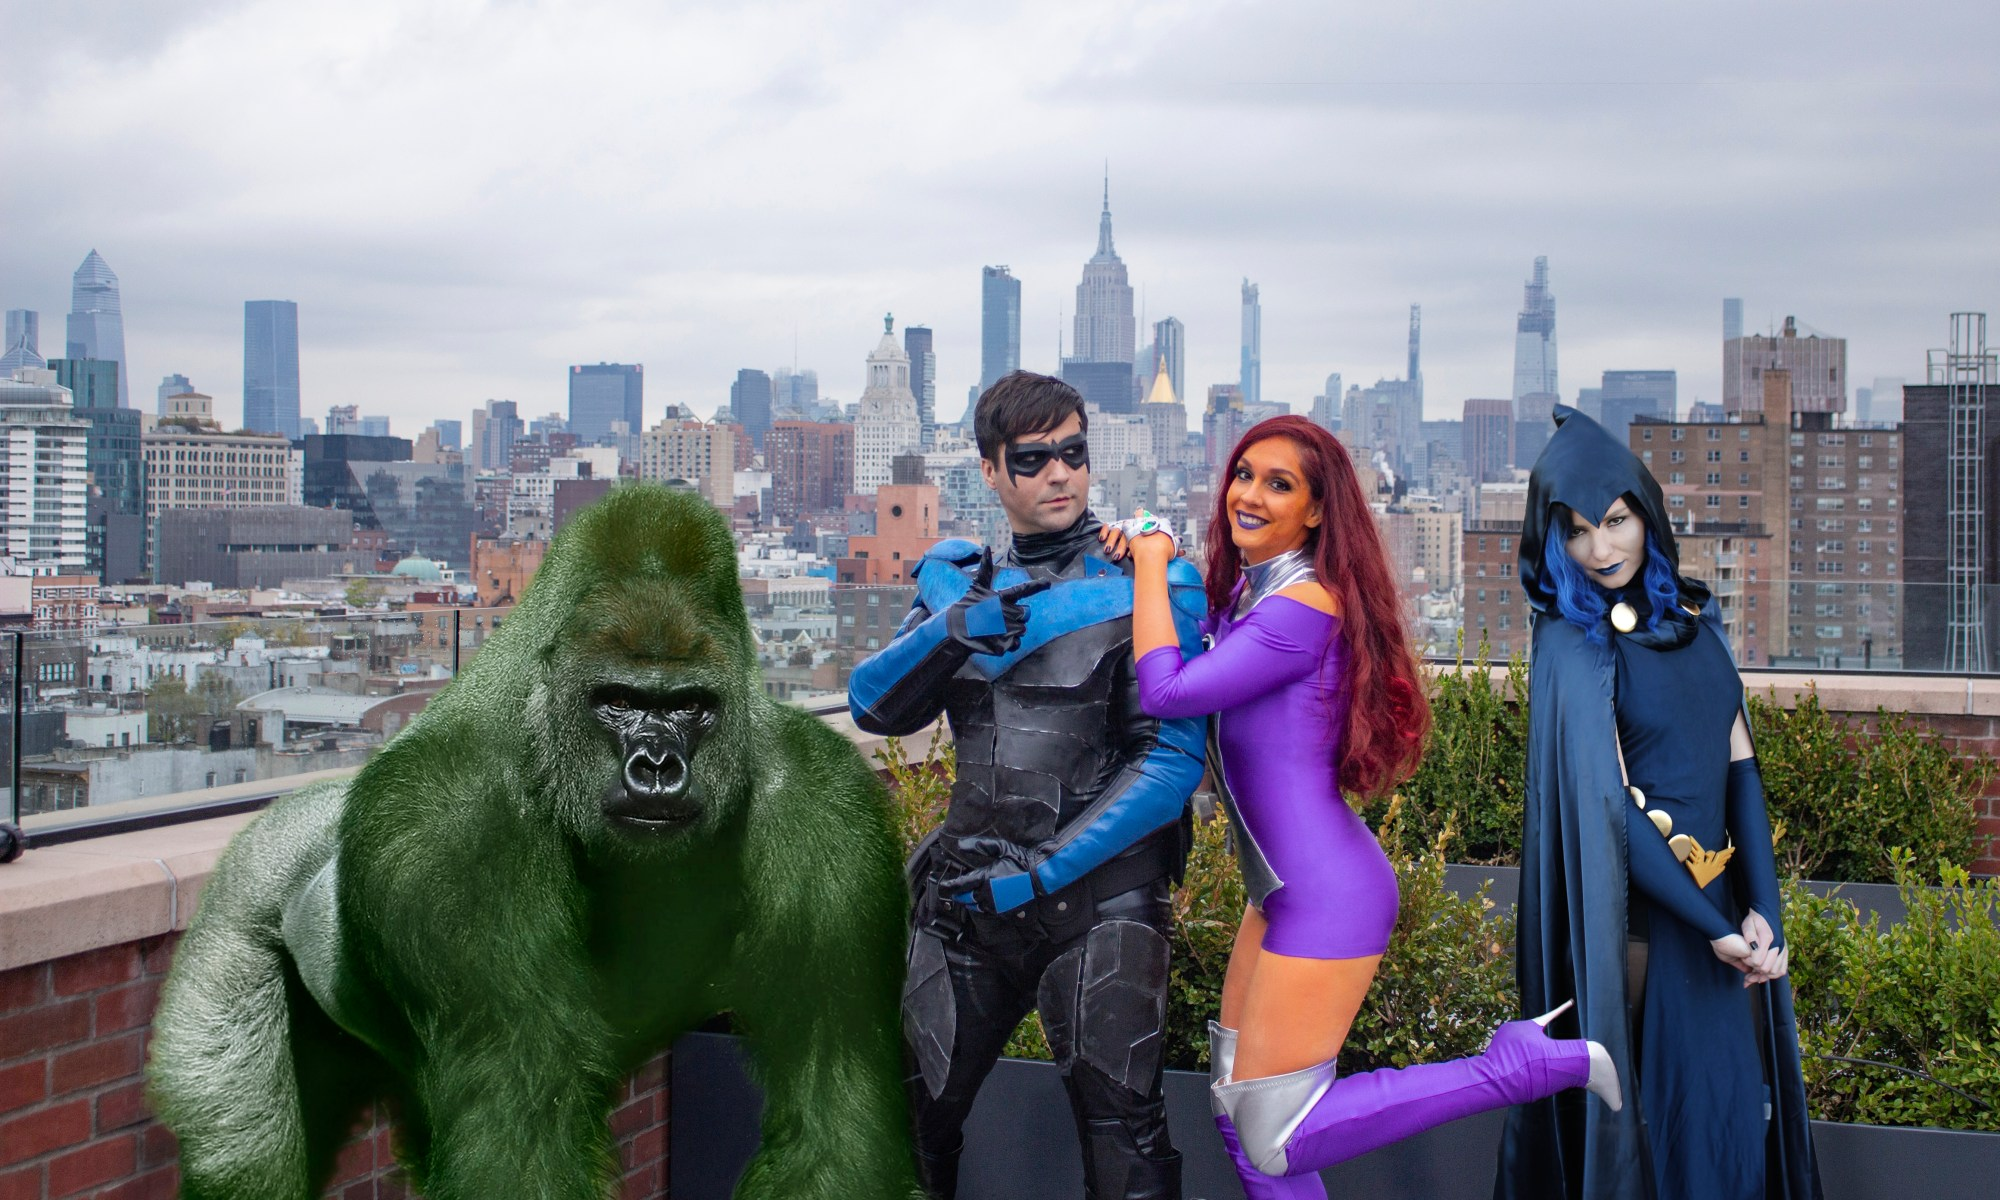 Beast Boy, Nightwing, Starfire, and Raven in family photo.